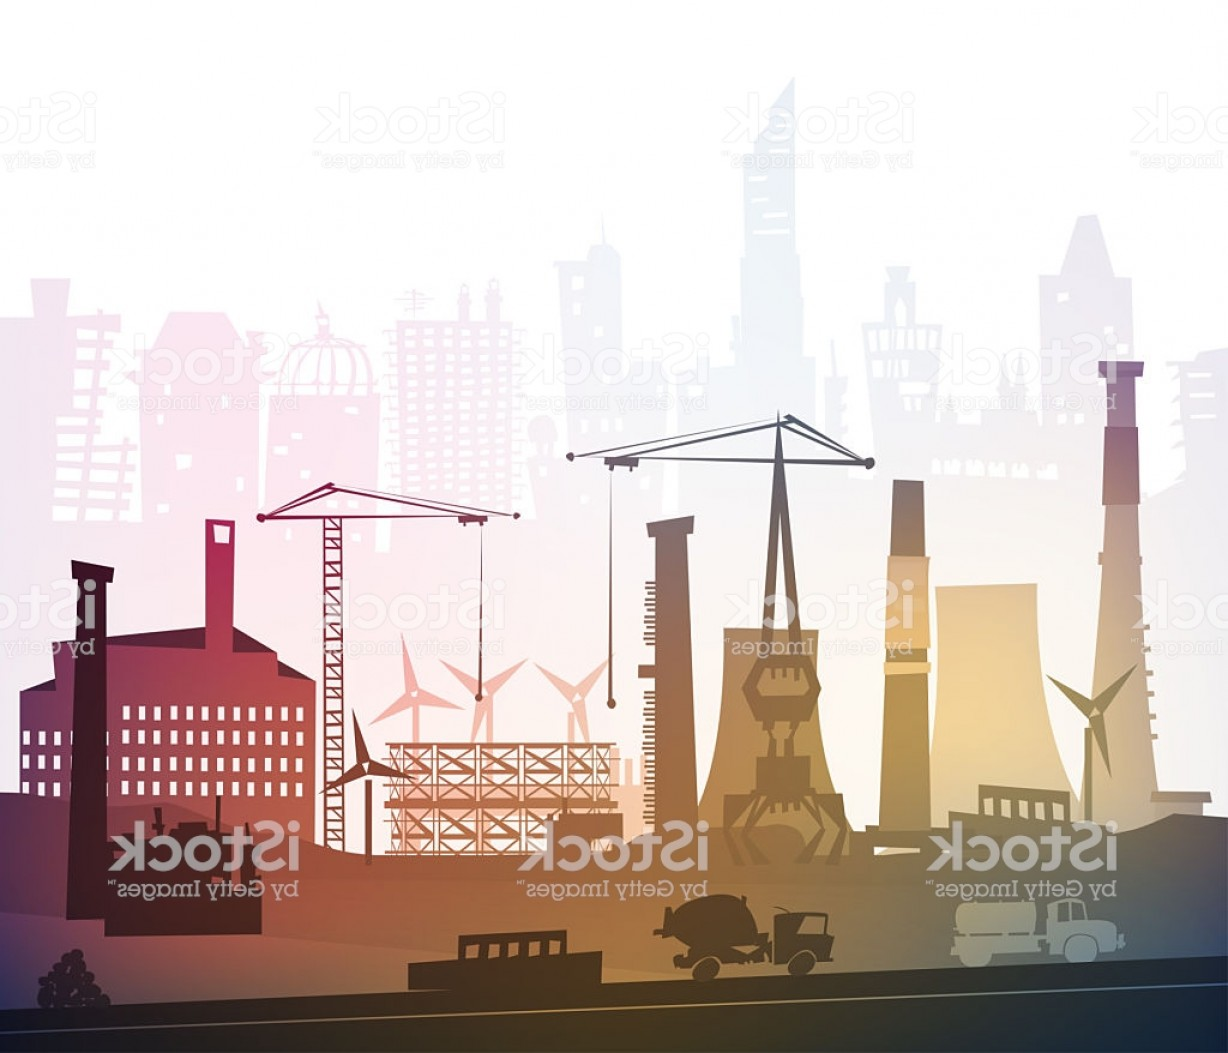 Factory Vector Skyline: Vector Graphic Of A Factory Cranes And Hazy Skyline Behind Gm